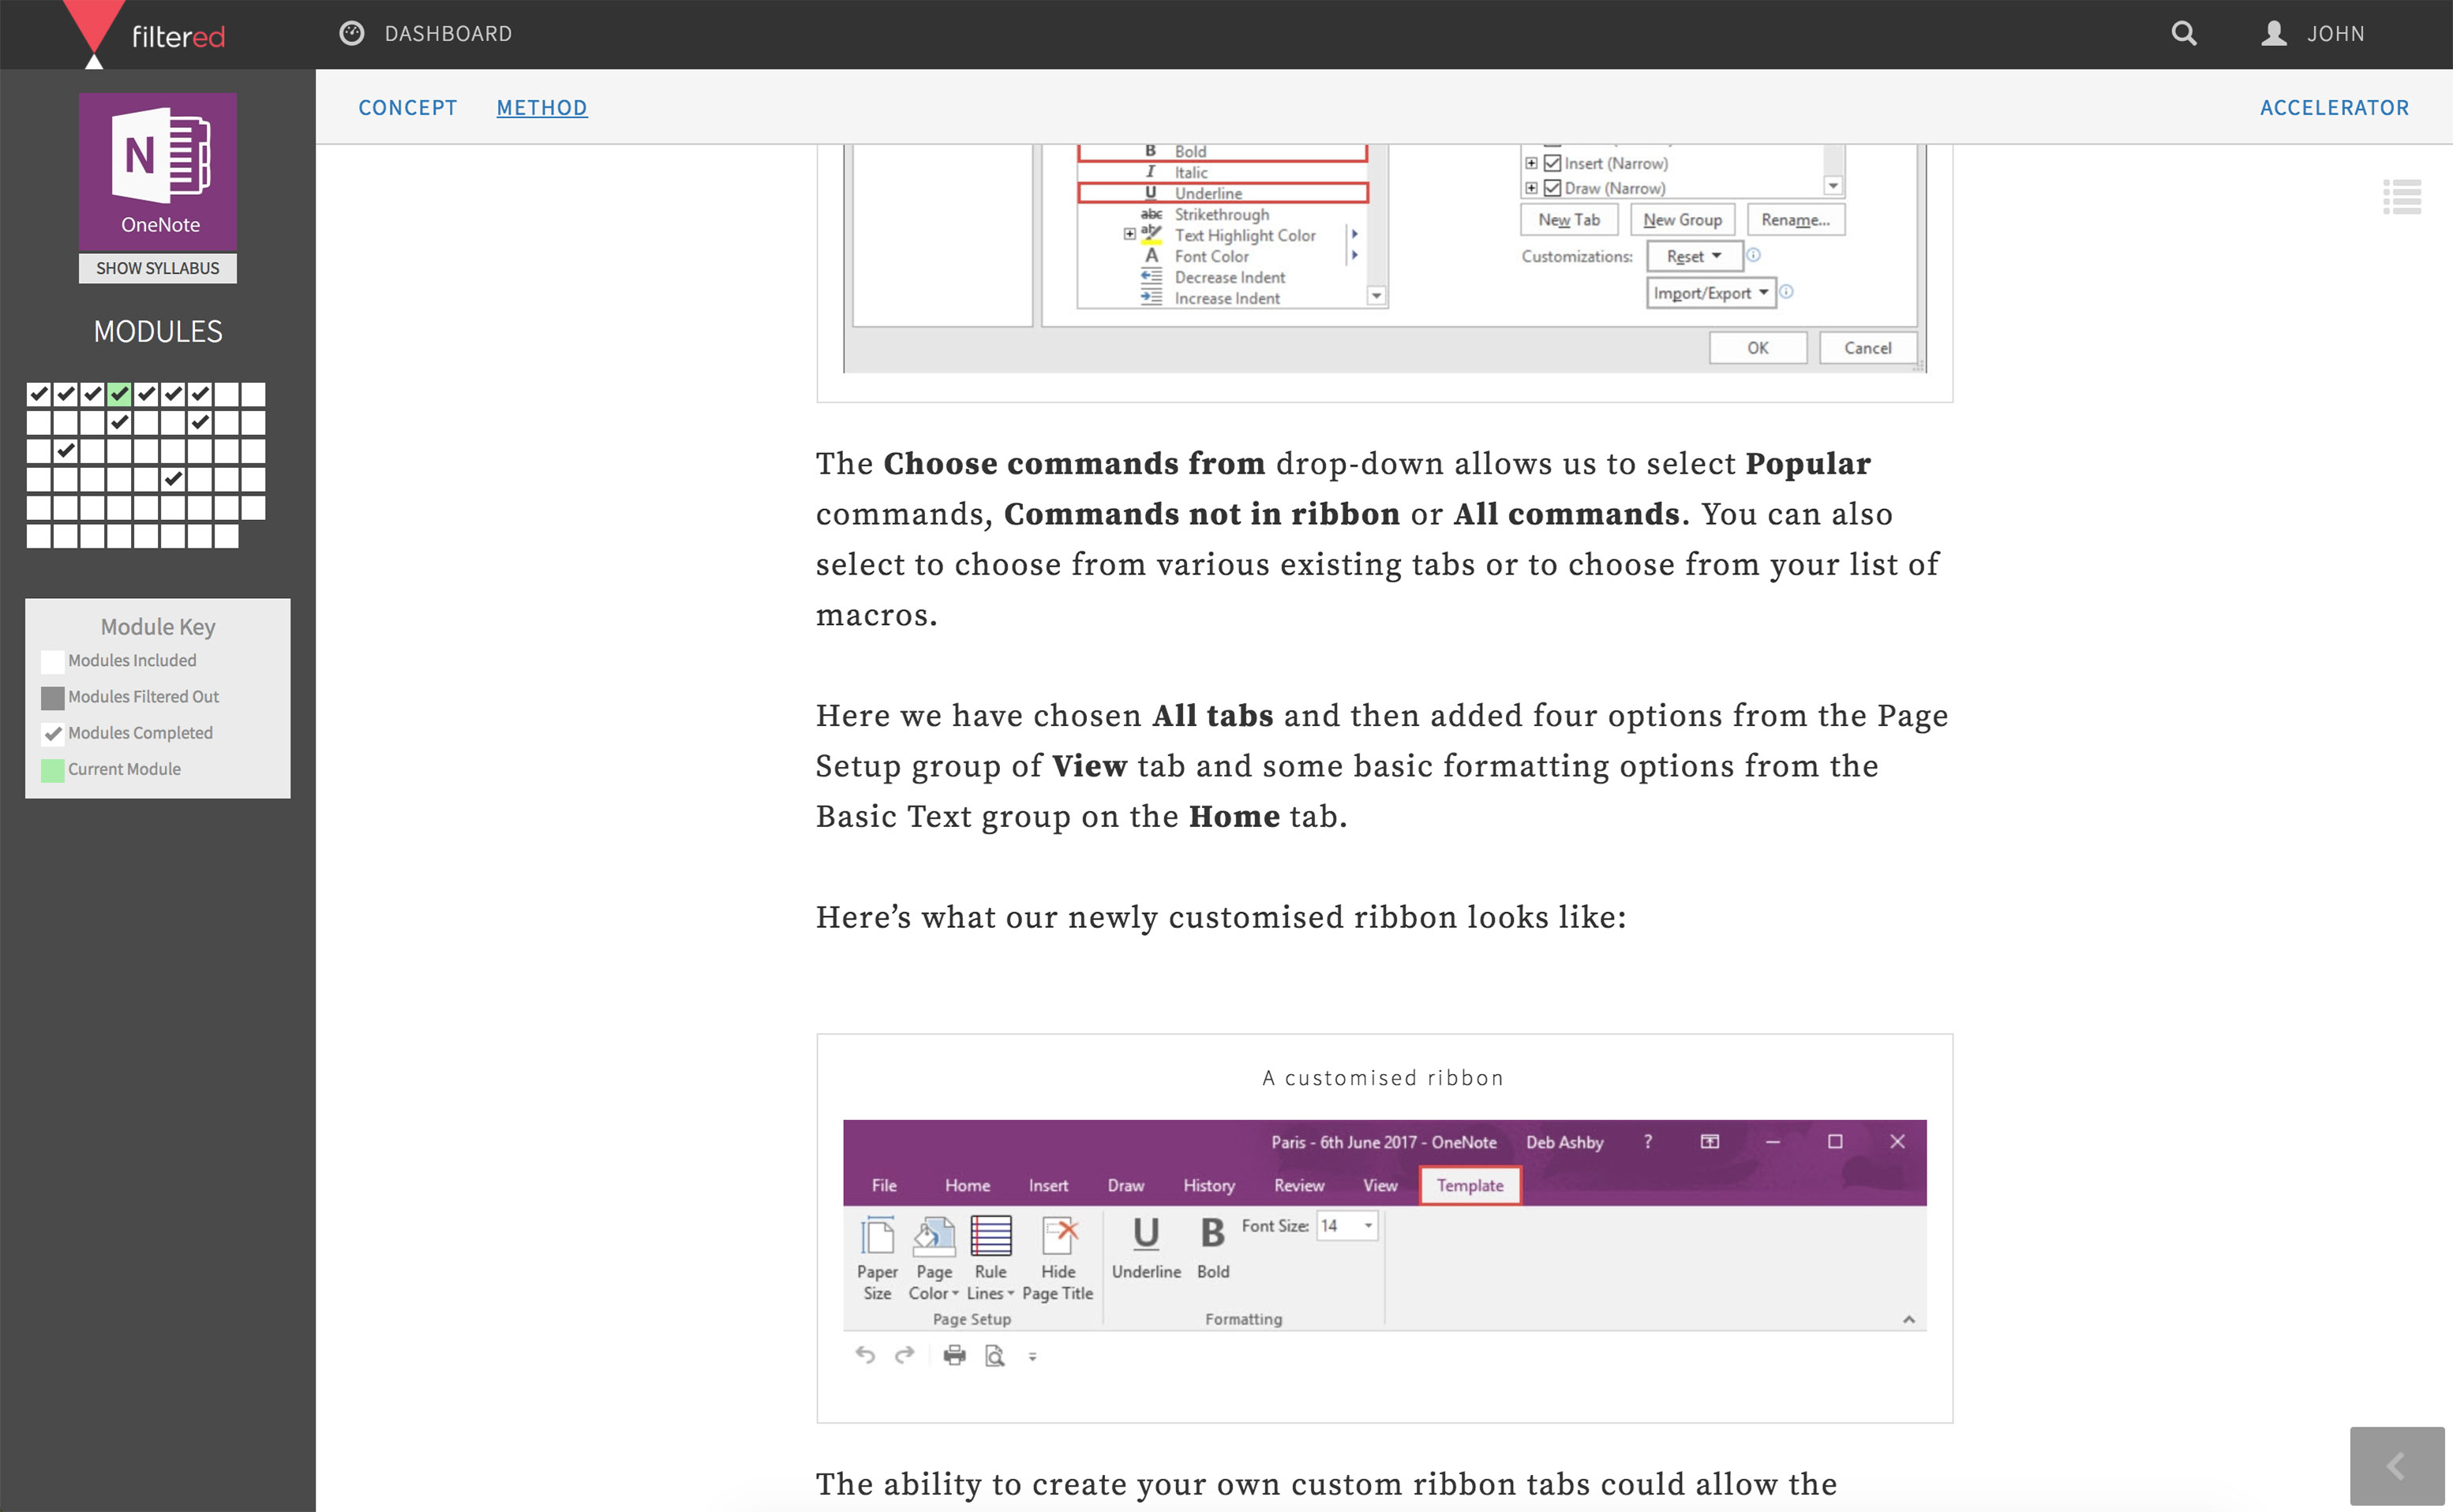 OneNote Course Text2.jpg